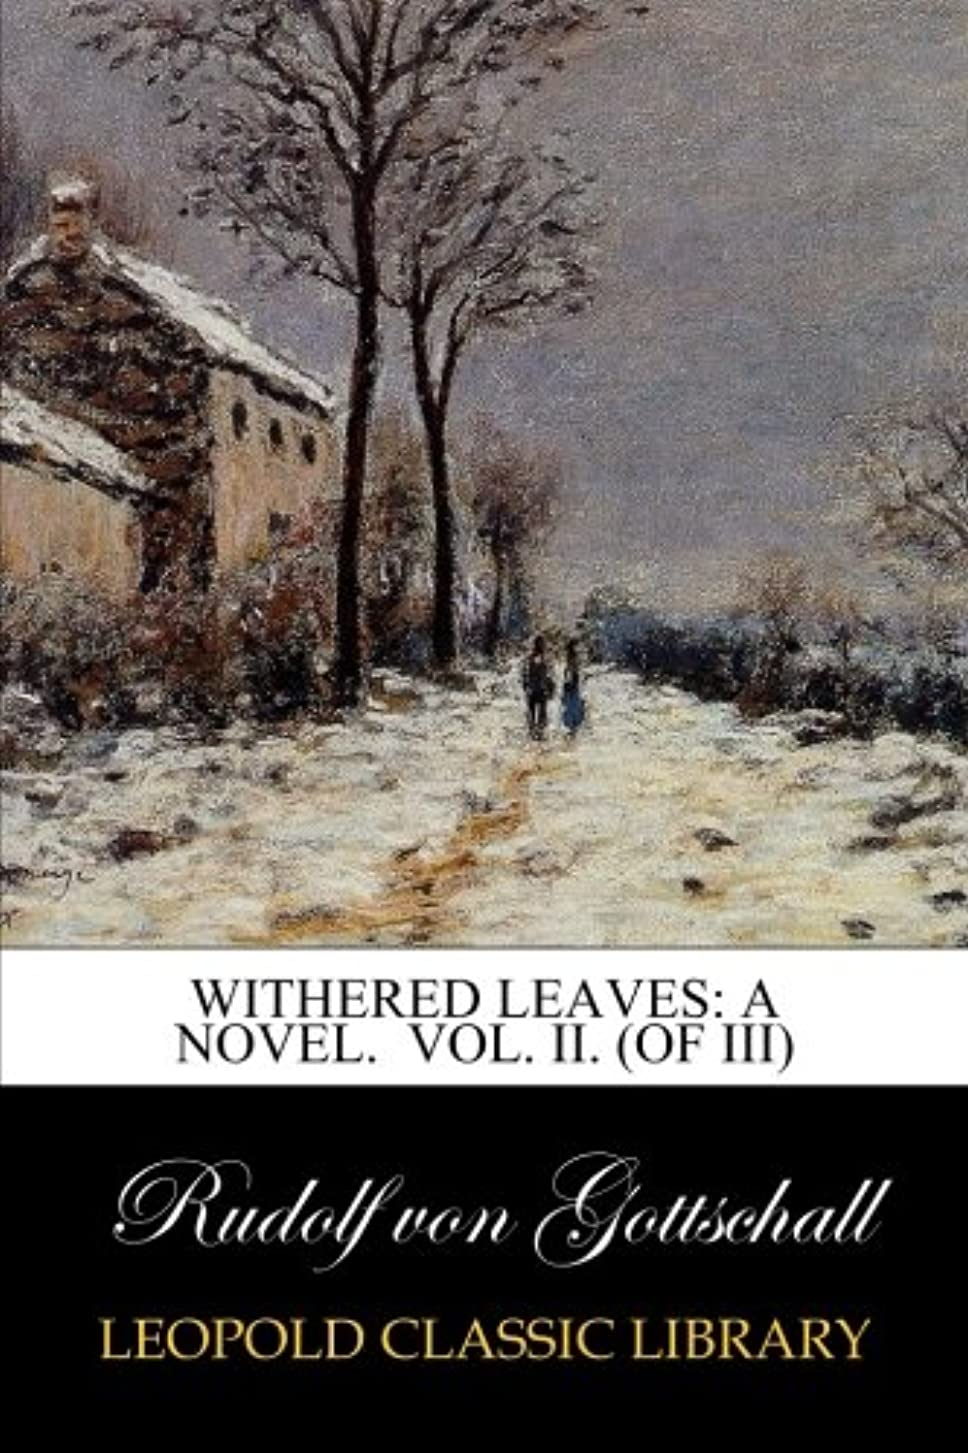 腸人形同情Withered Leaves: A Novel.  Vol. II. (of III)